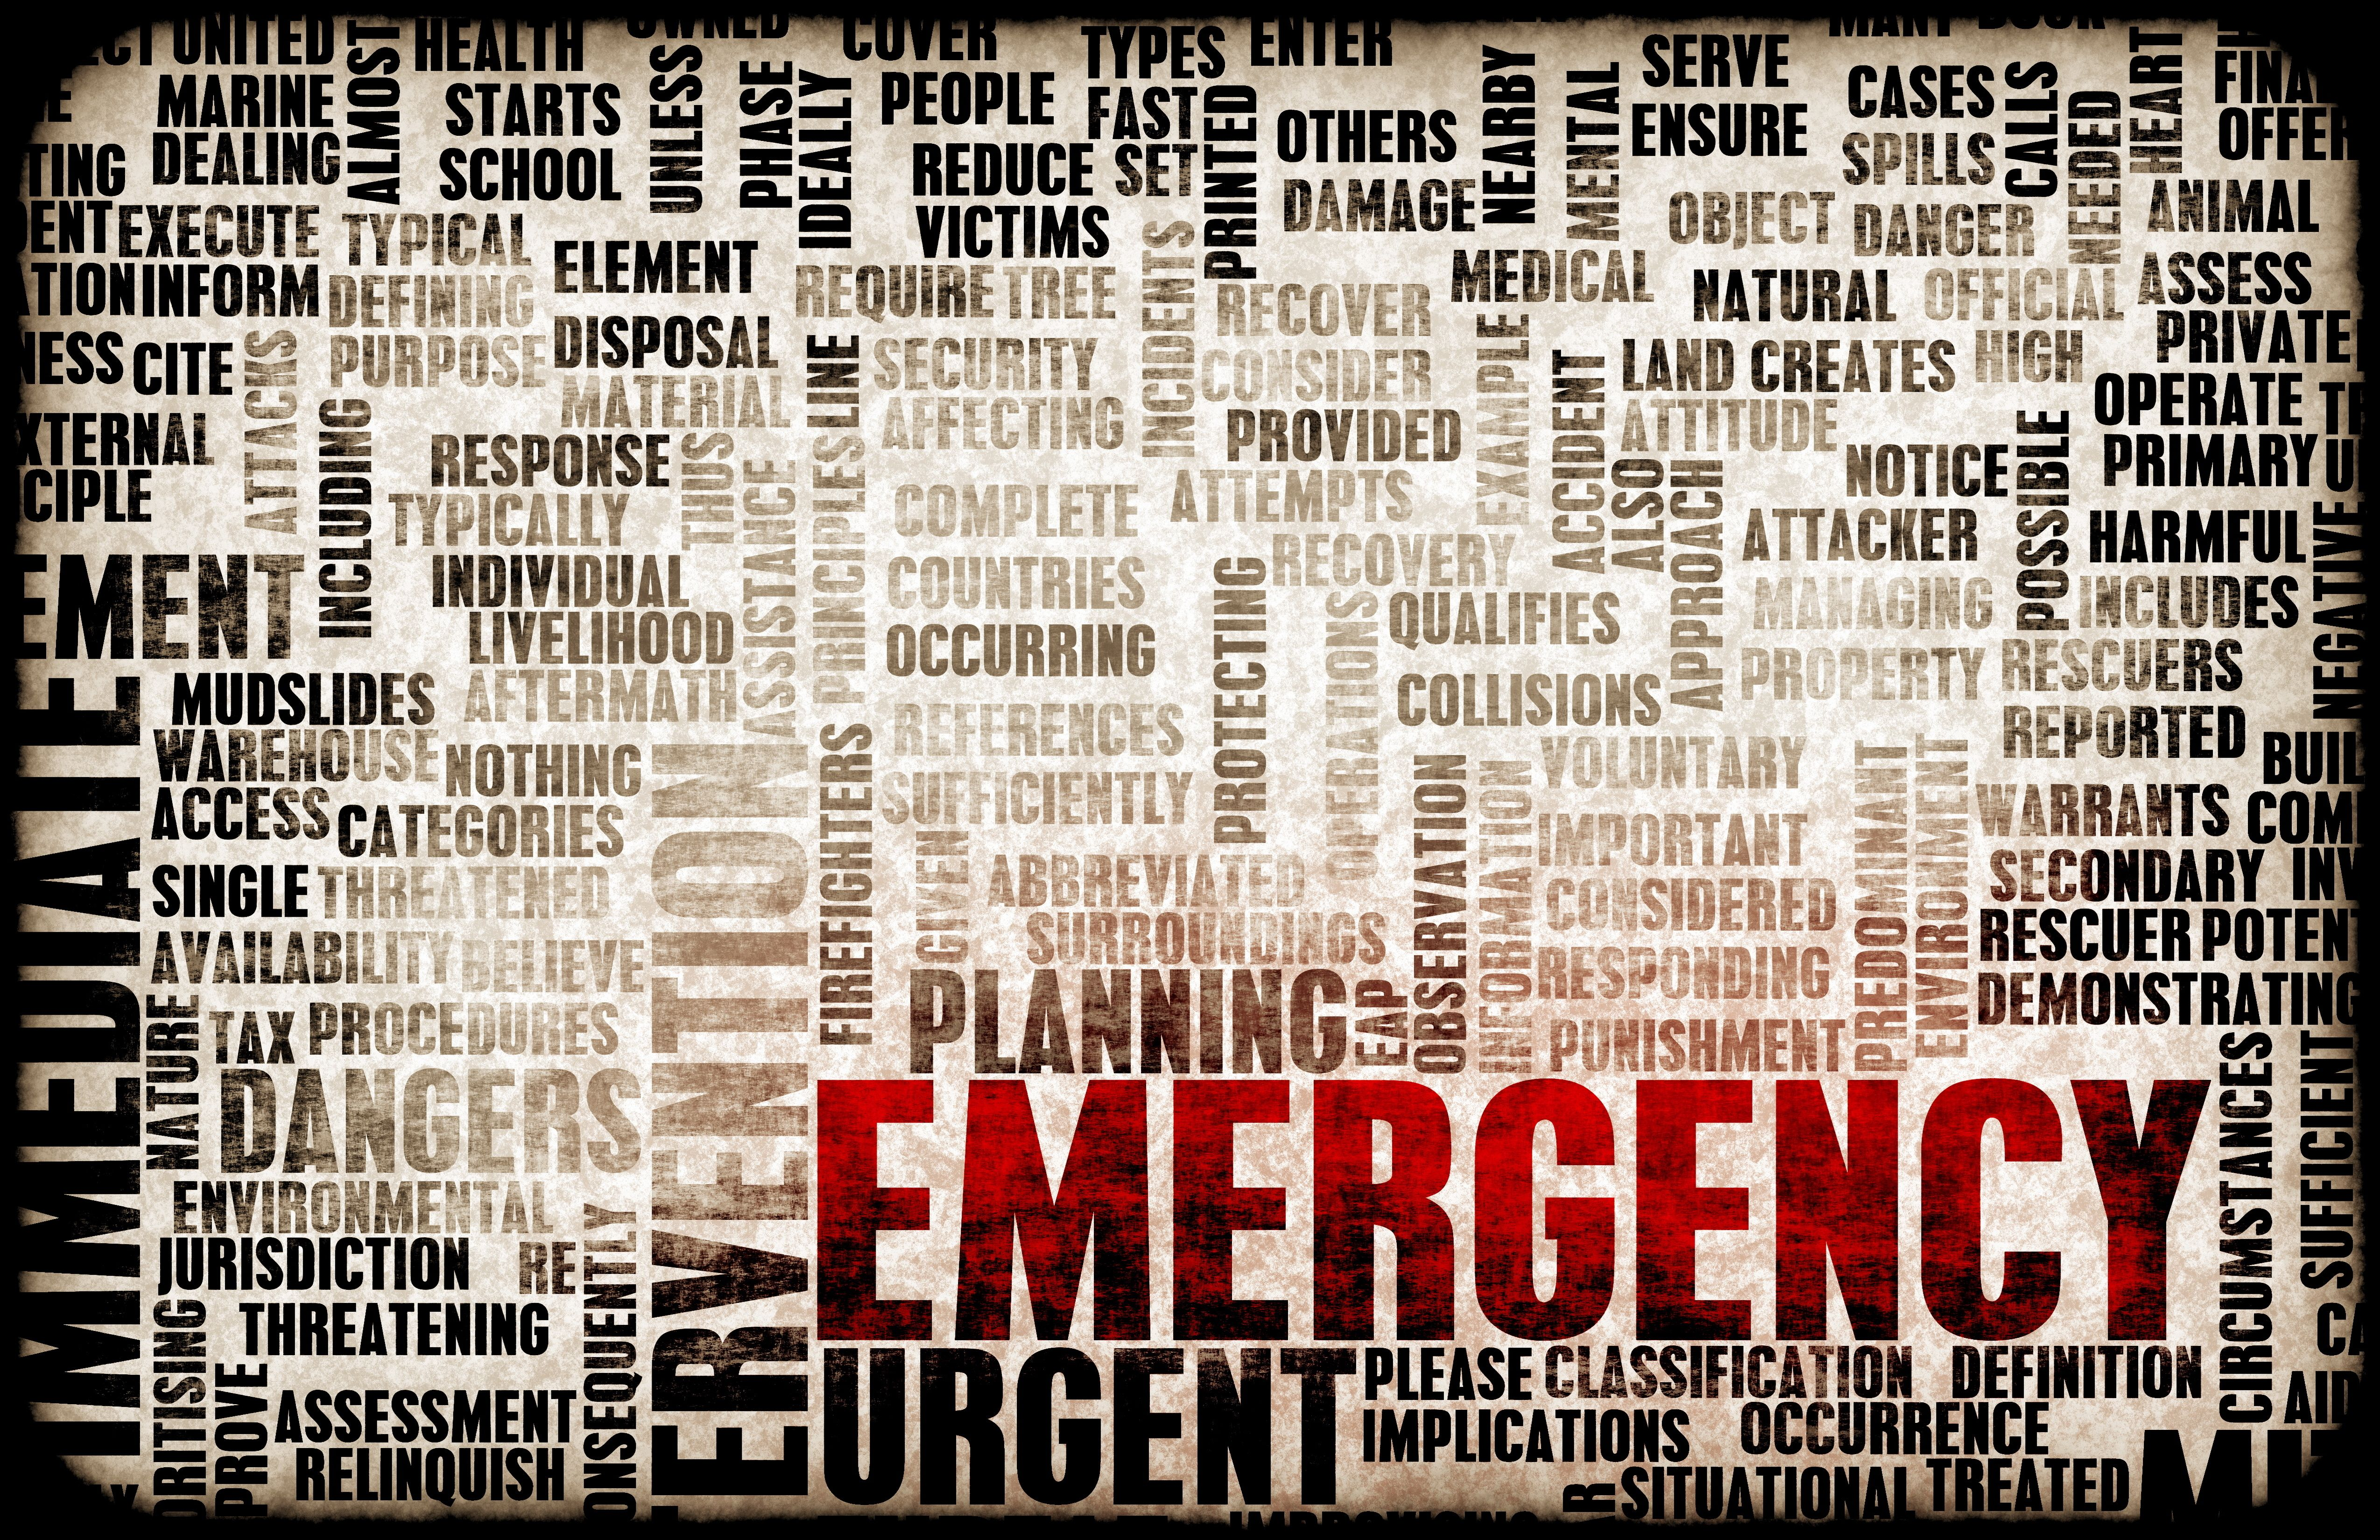 Lack of Emergency Preparedness Is Elder Abuse | The ... Disaster Preparedness Nursing Homes Plans on flood disaster plan, sample disaster plan, conflict resolution plan, risk communications plan, disaster continuity plan, writing a media plan, real estate plan, hospital disaster plan, disaster evacuation plan, funny disaster plan, disaster management plan, disaster plan template, disaster preparation plan, employee performance plan, disaster prevention plan, disaster recovery plan, disaster awareness plan, disaster kit, risk reduction plan, company operations plan,